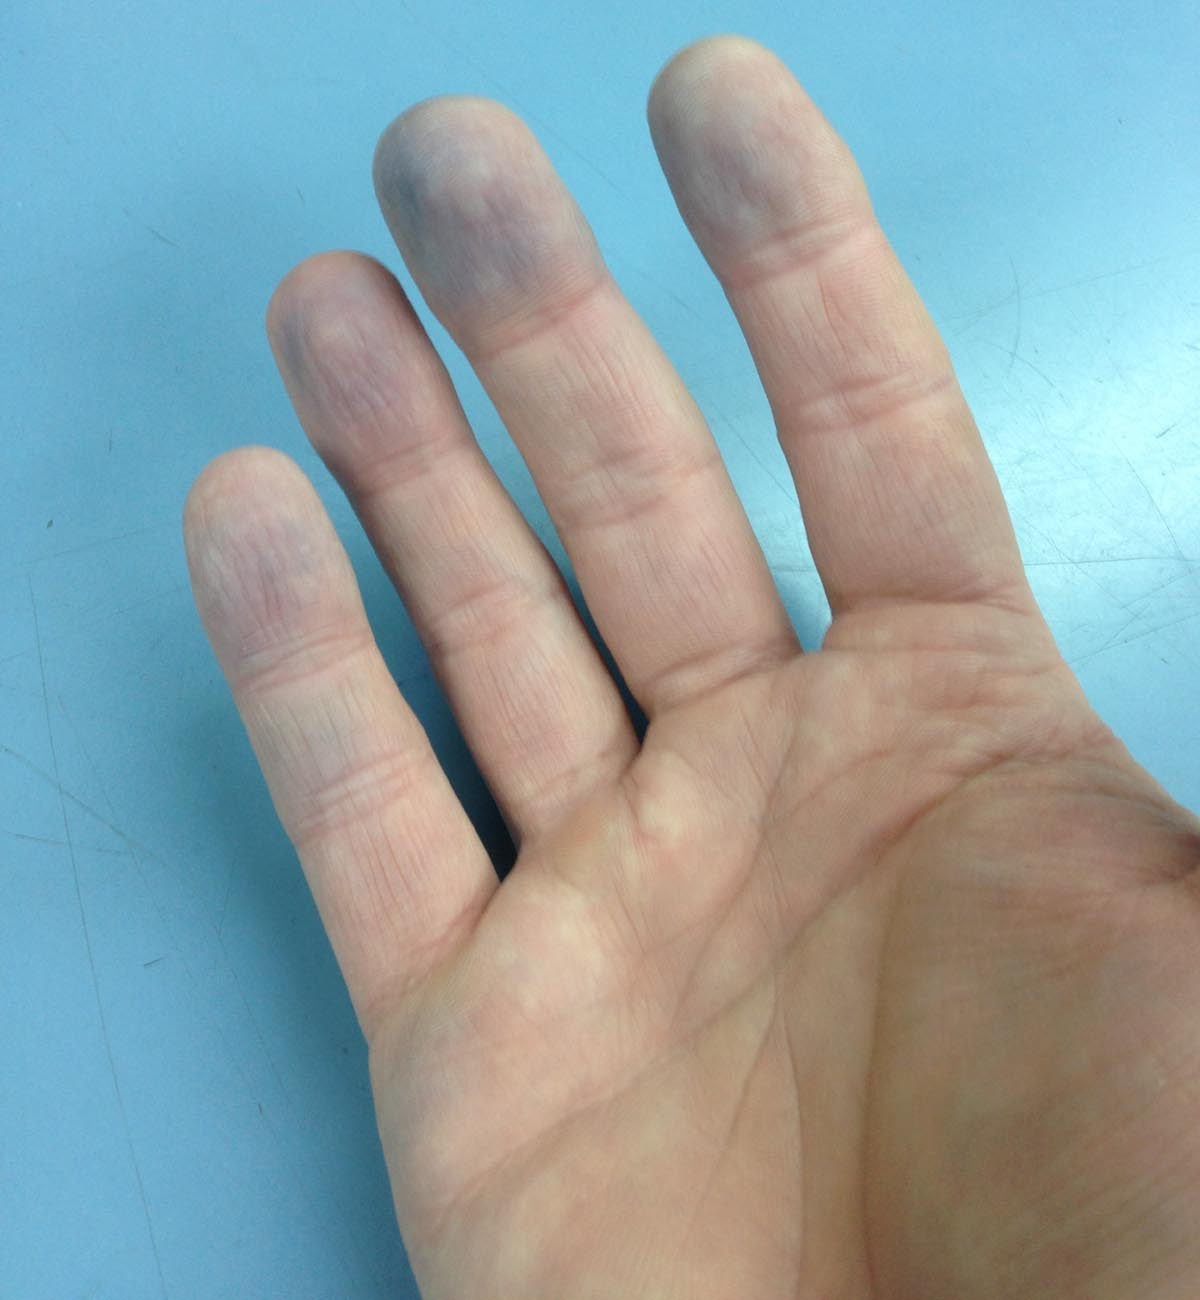 Blue finger tips